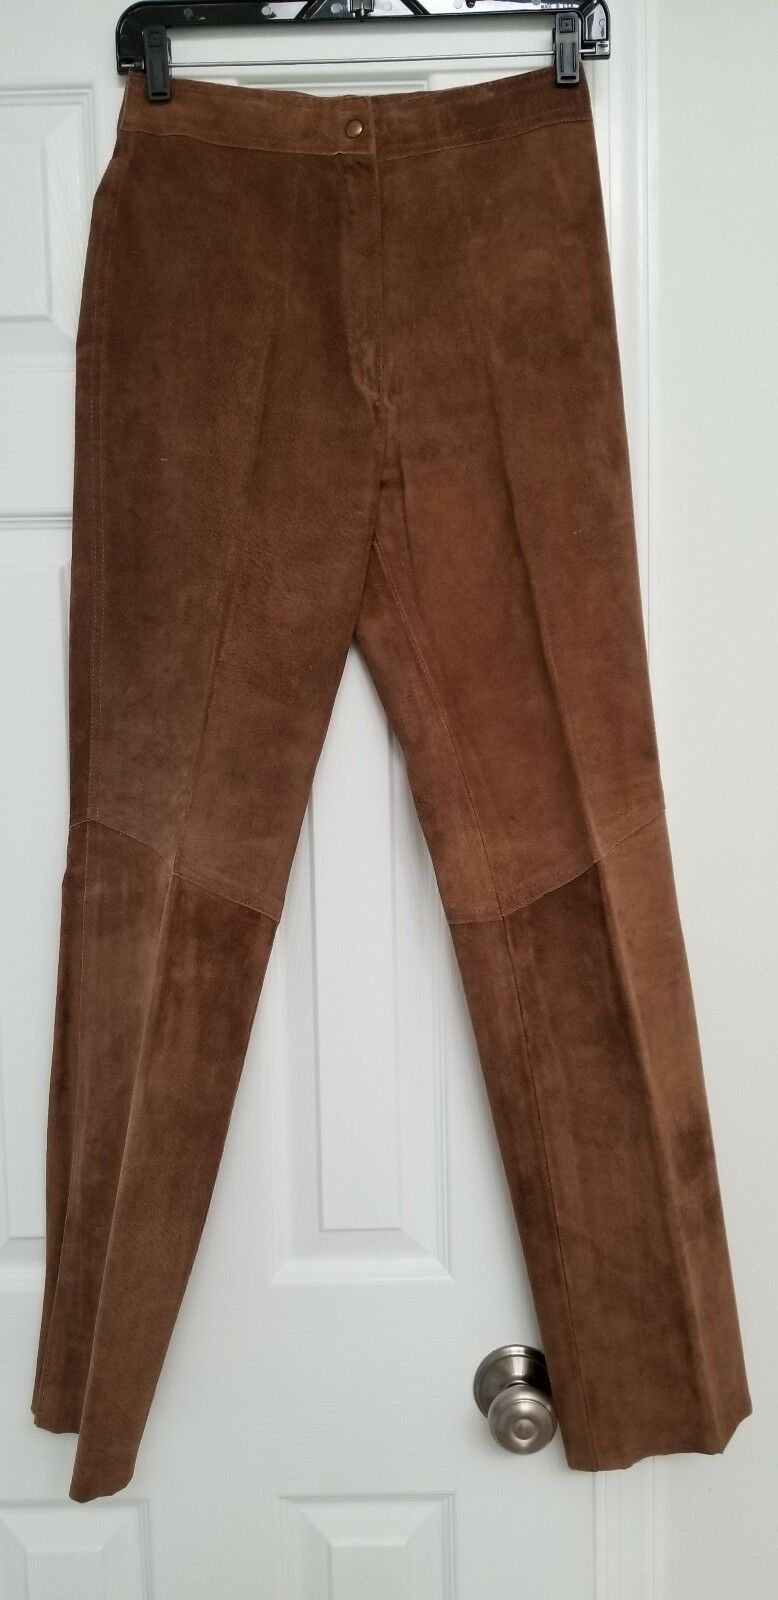 Vintage Brown Suede Leather Pants Women's Size 26